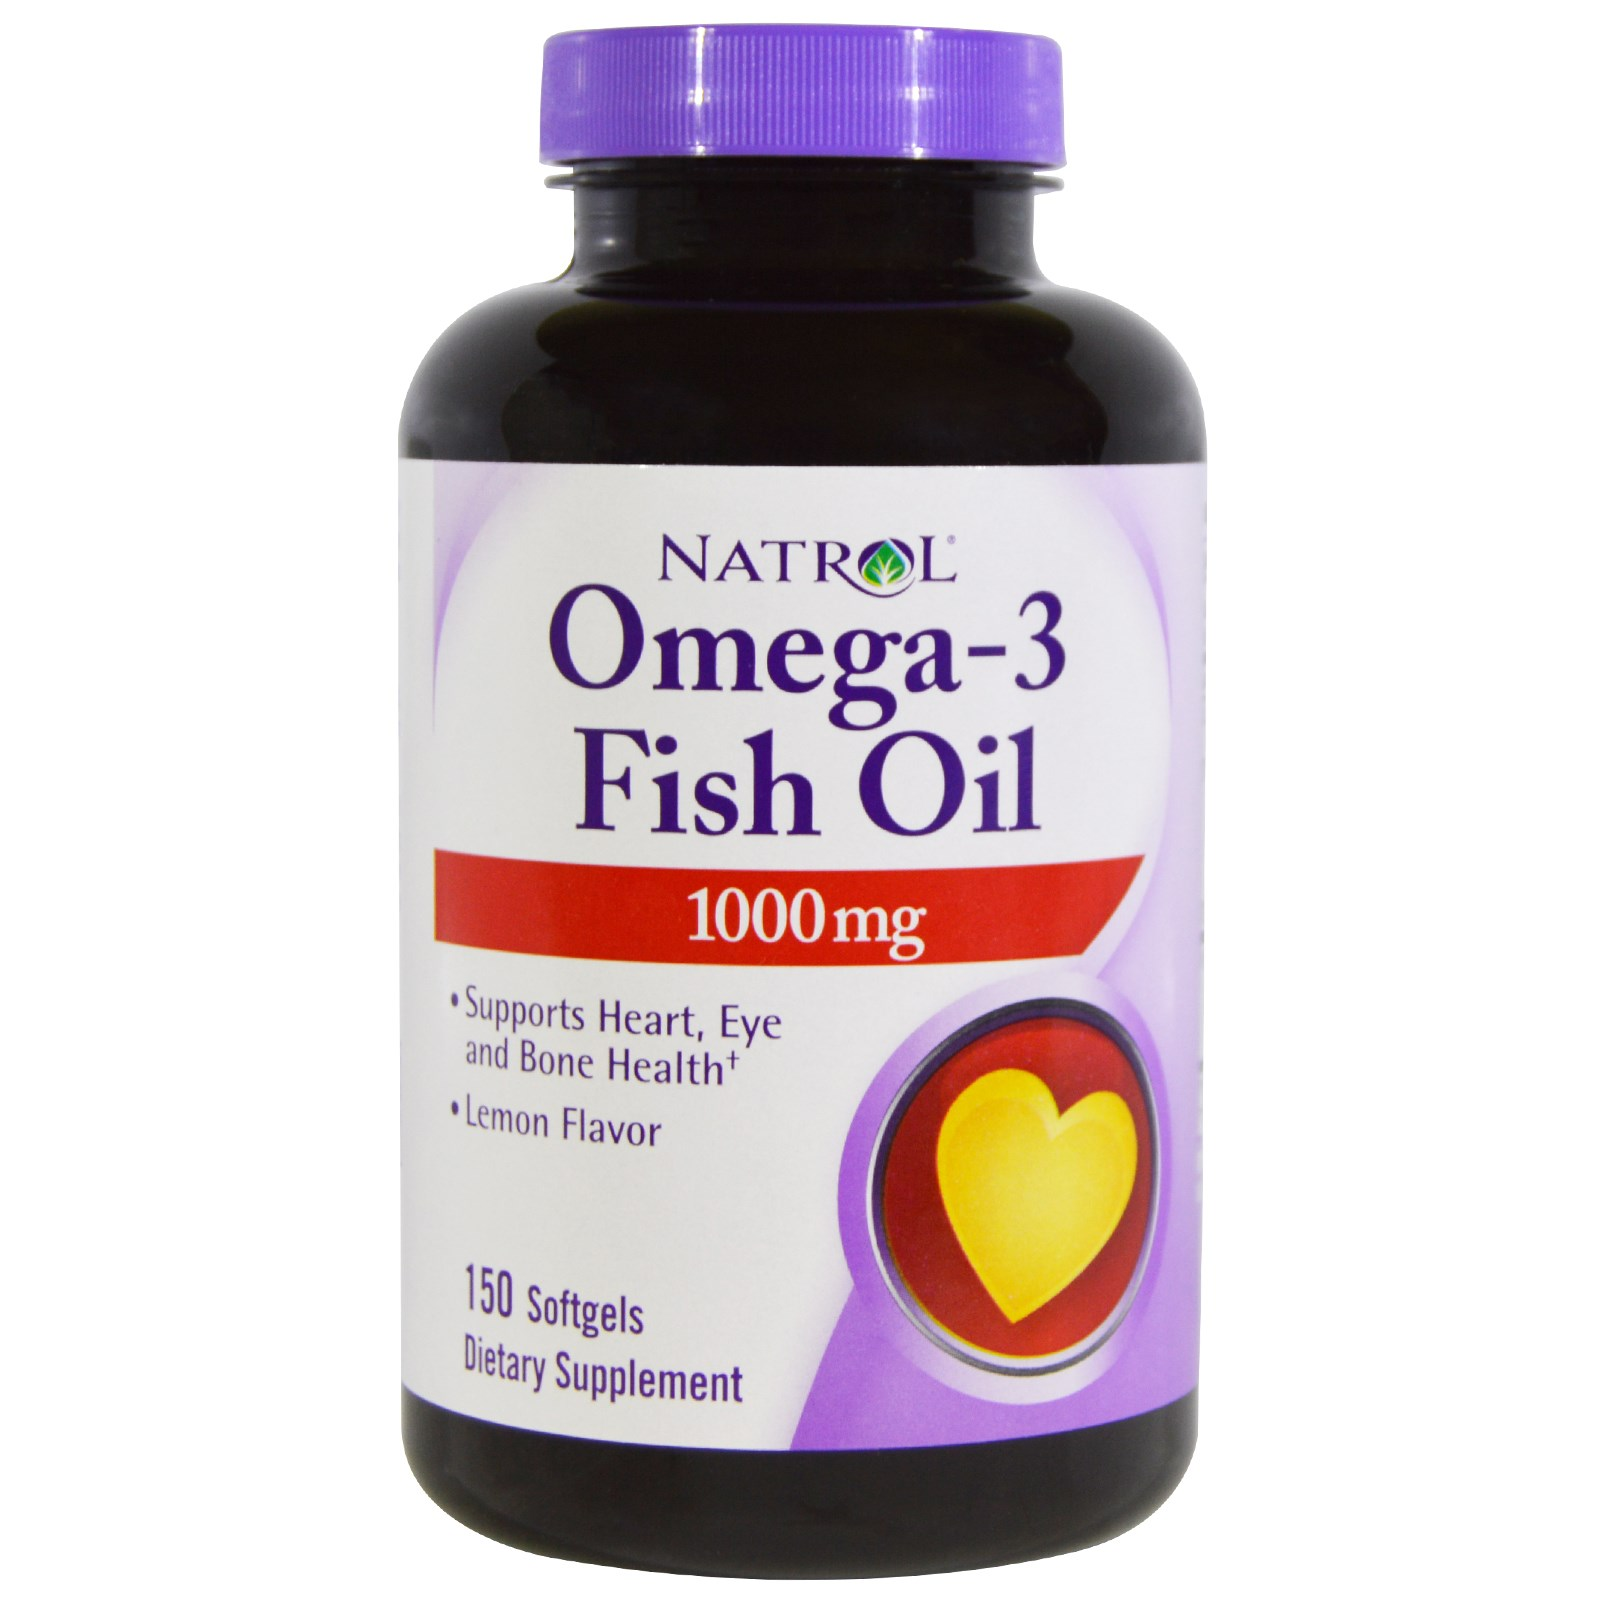 Natrol omega 3 fish oil lemon flavor 1 000 mg 150 softgels for Fish omega 3